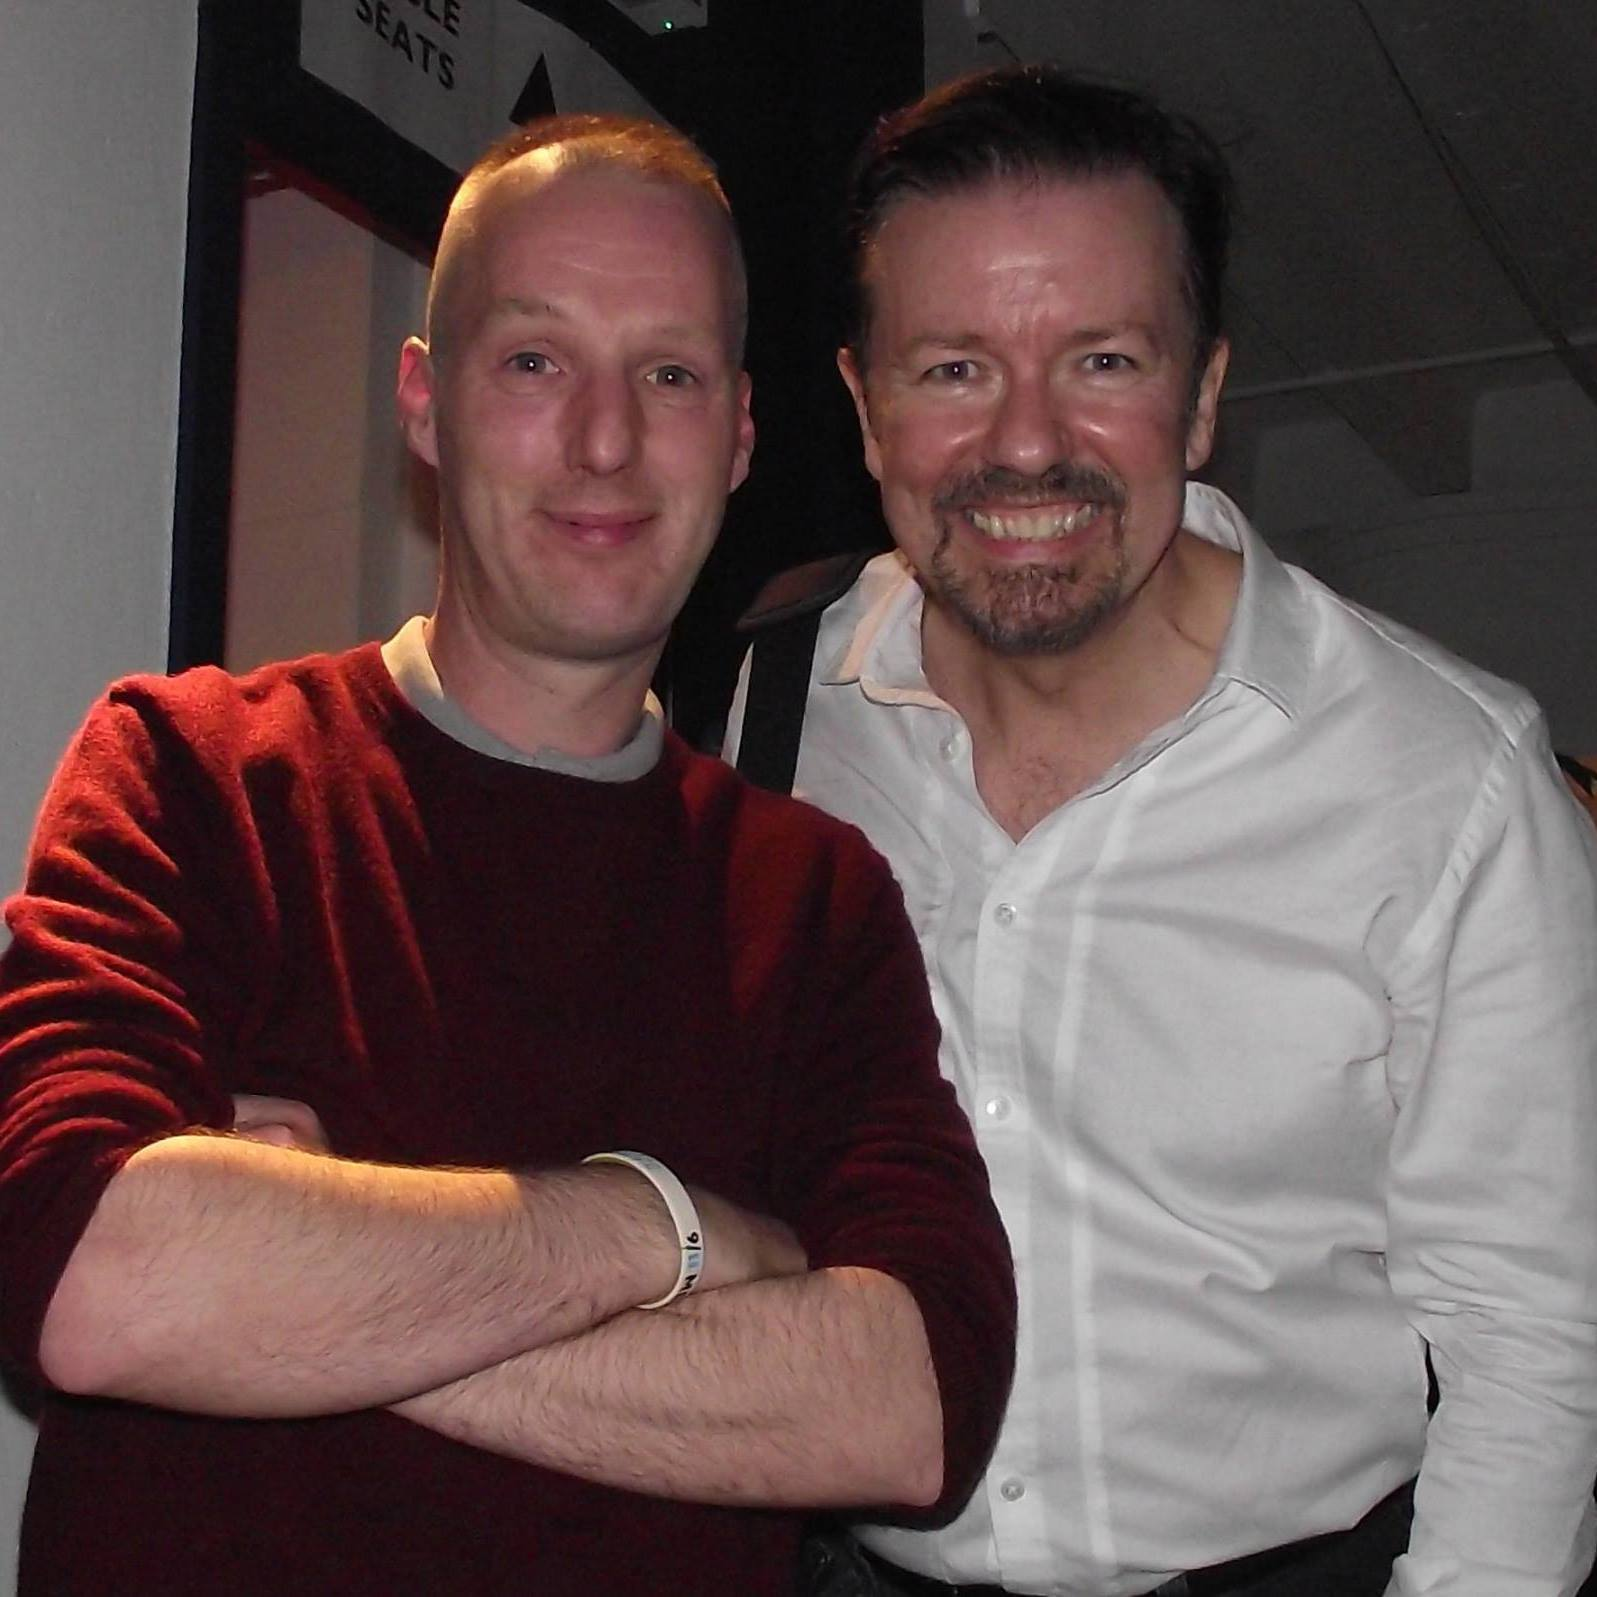 Ross Owen and Ricky Gervais